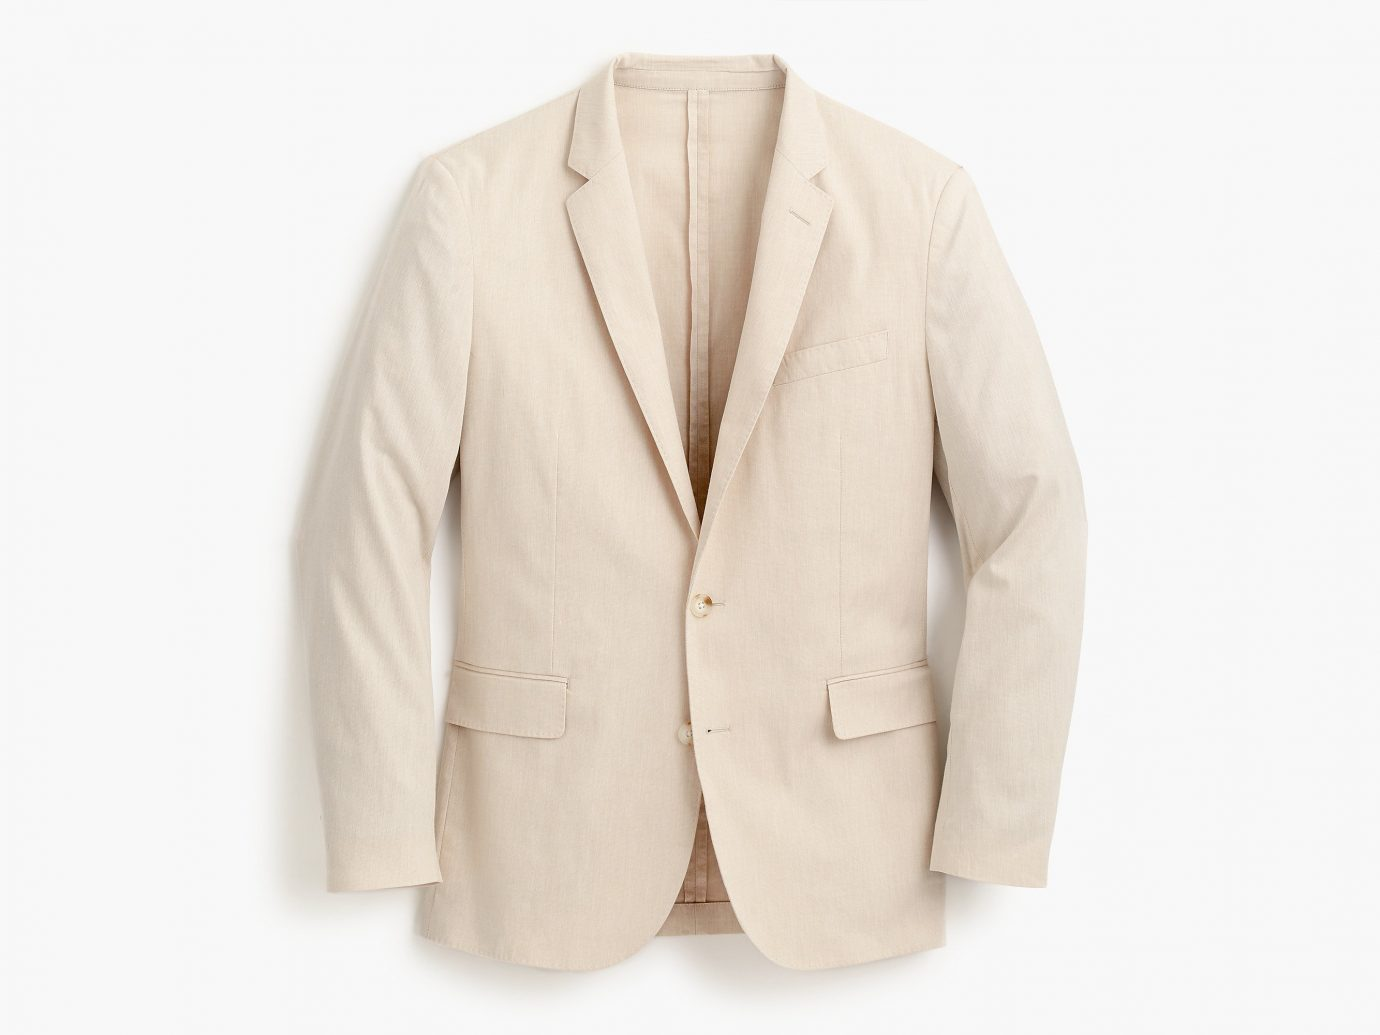 clothing man blazer suit jacket outerwear wearing beige button posing coat tan